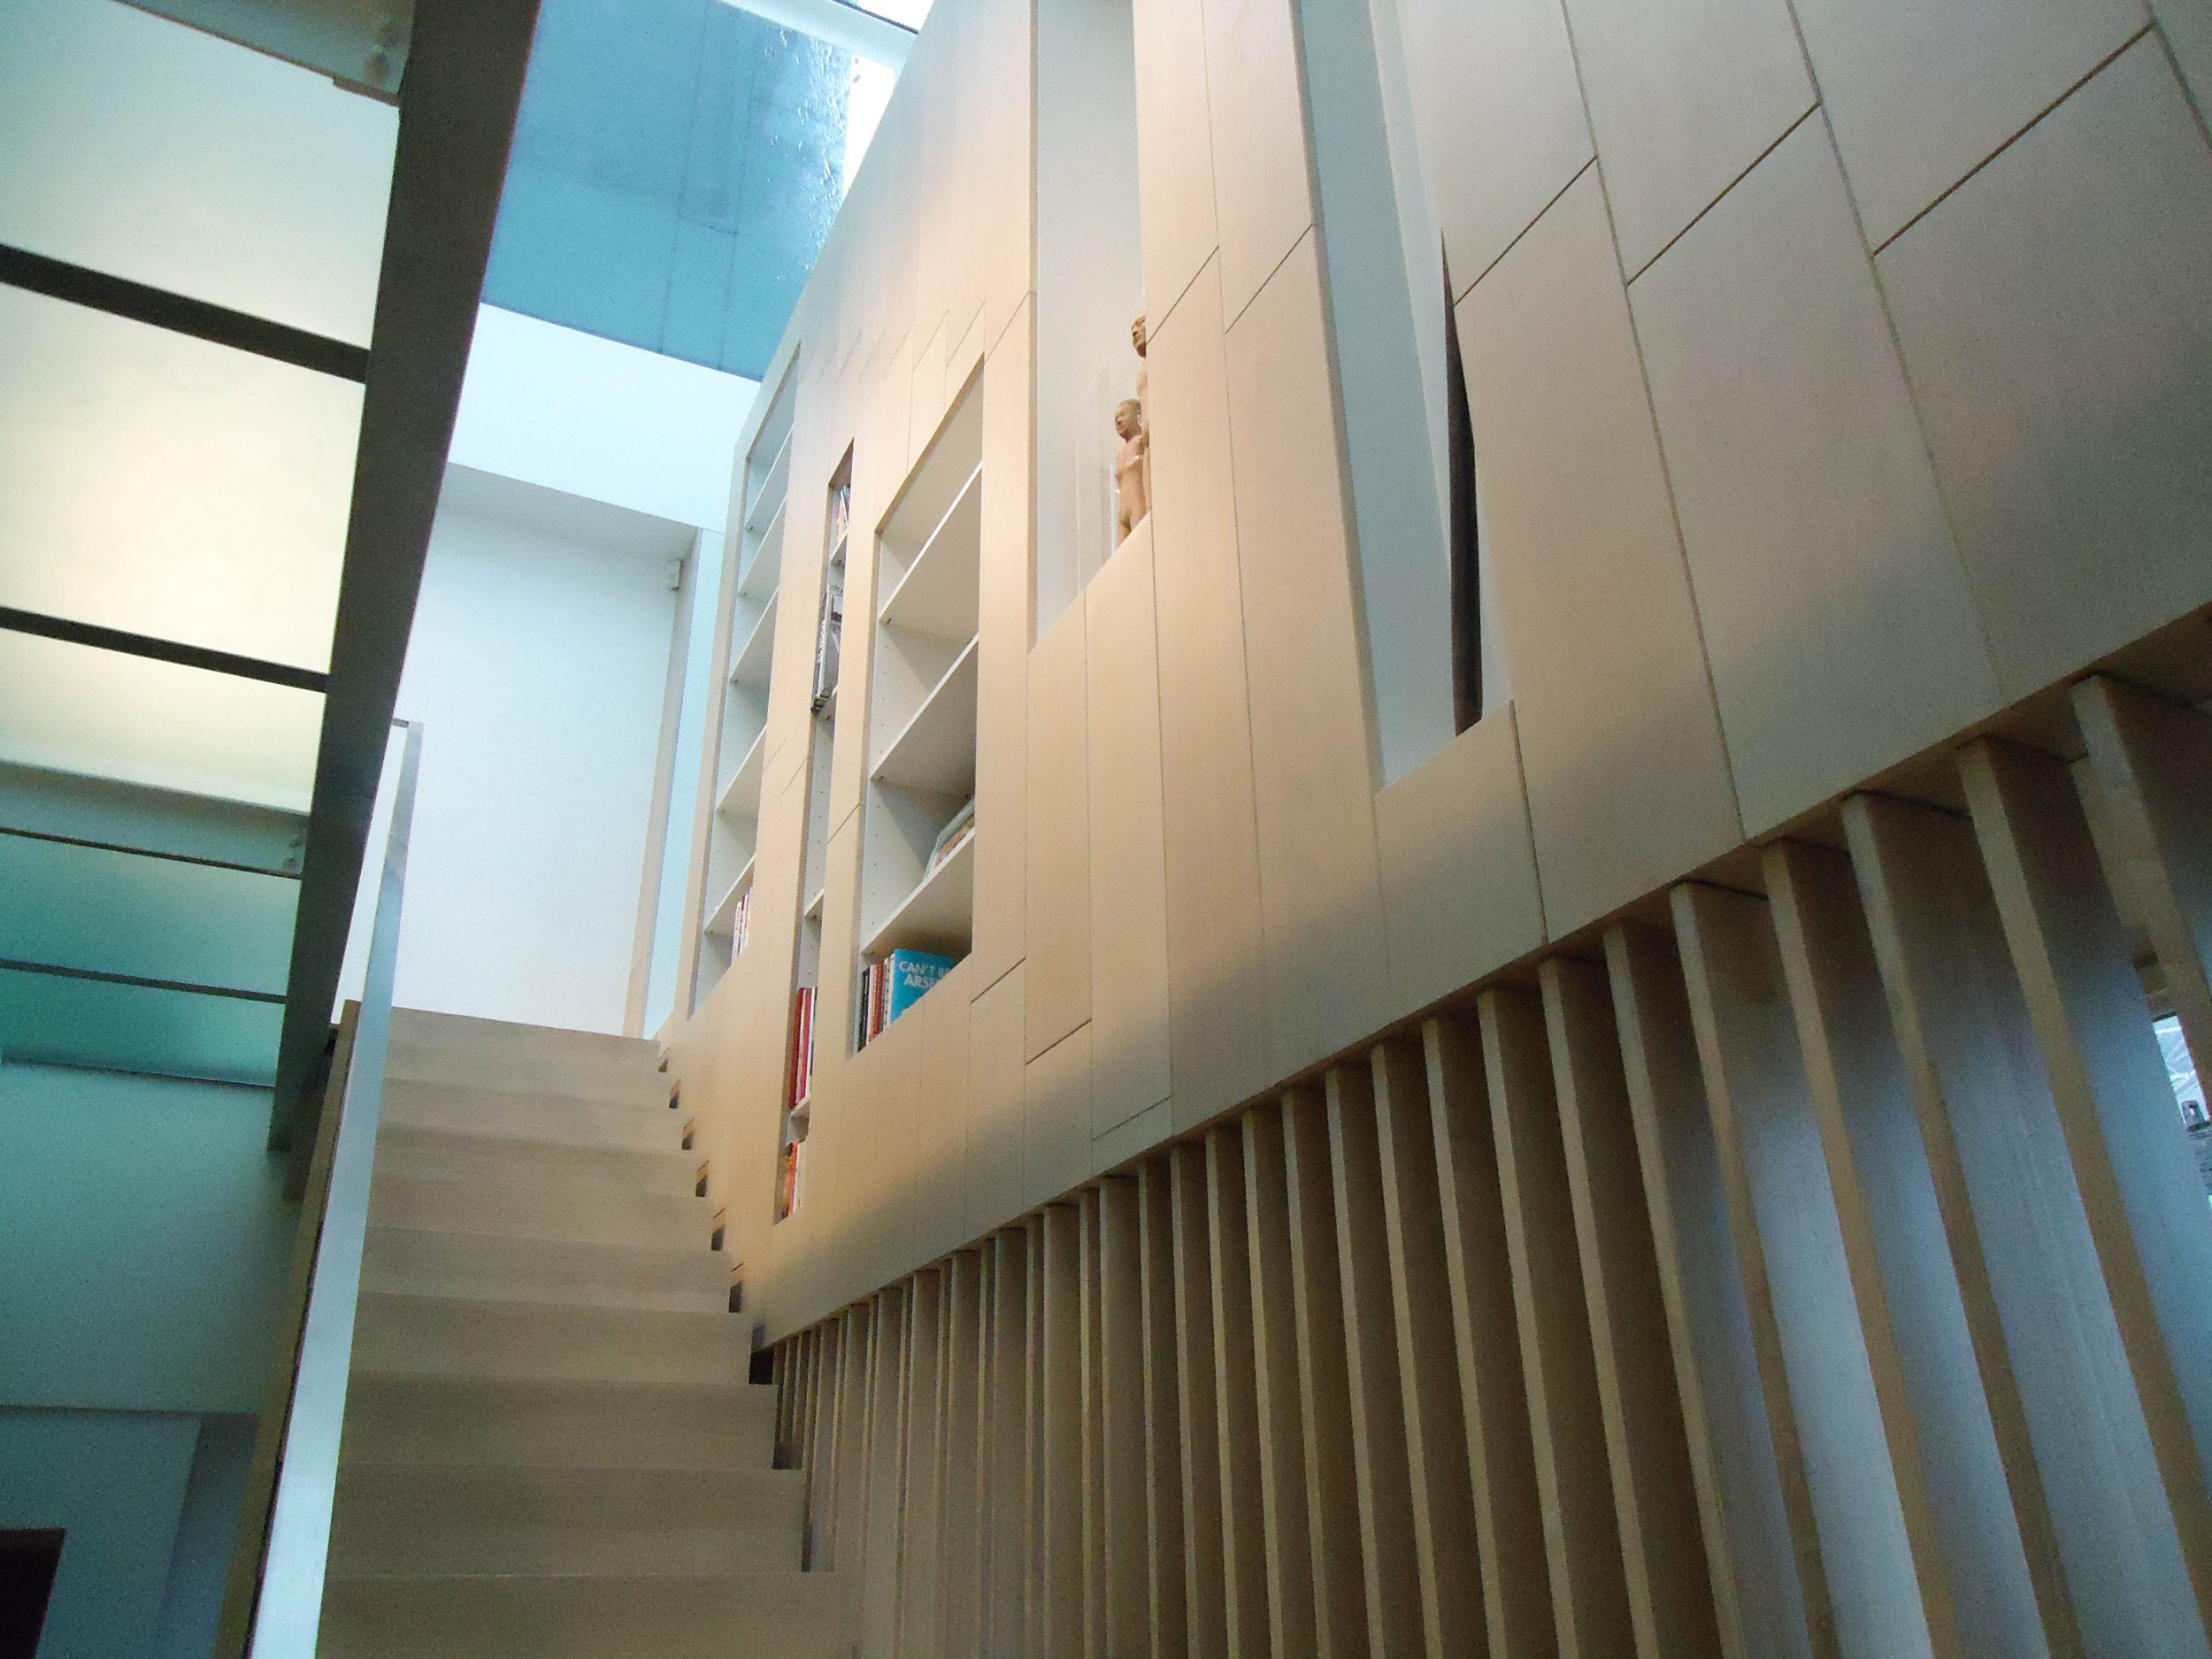 Kandd indoor stairs cabinetry